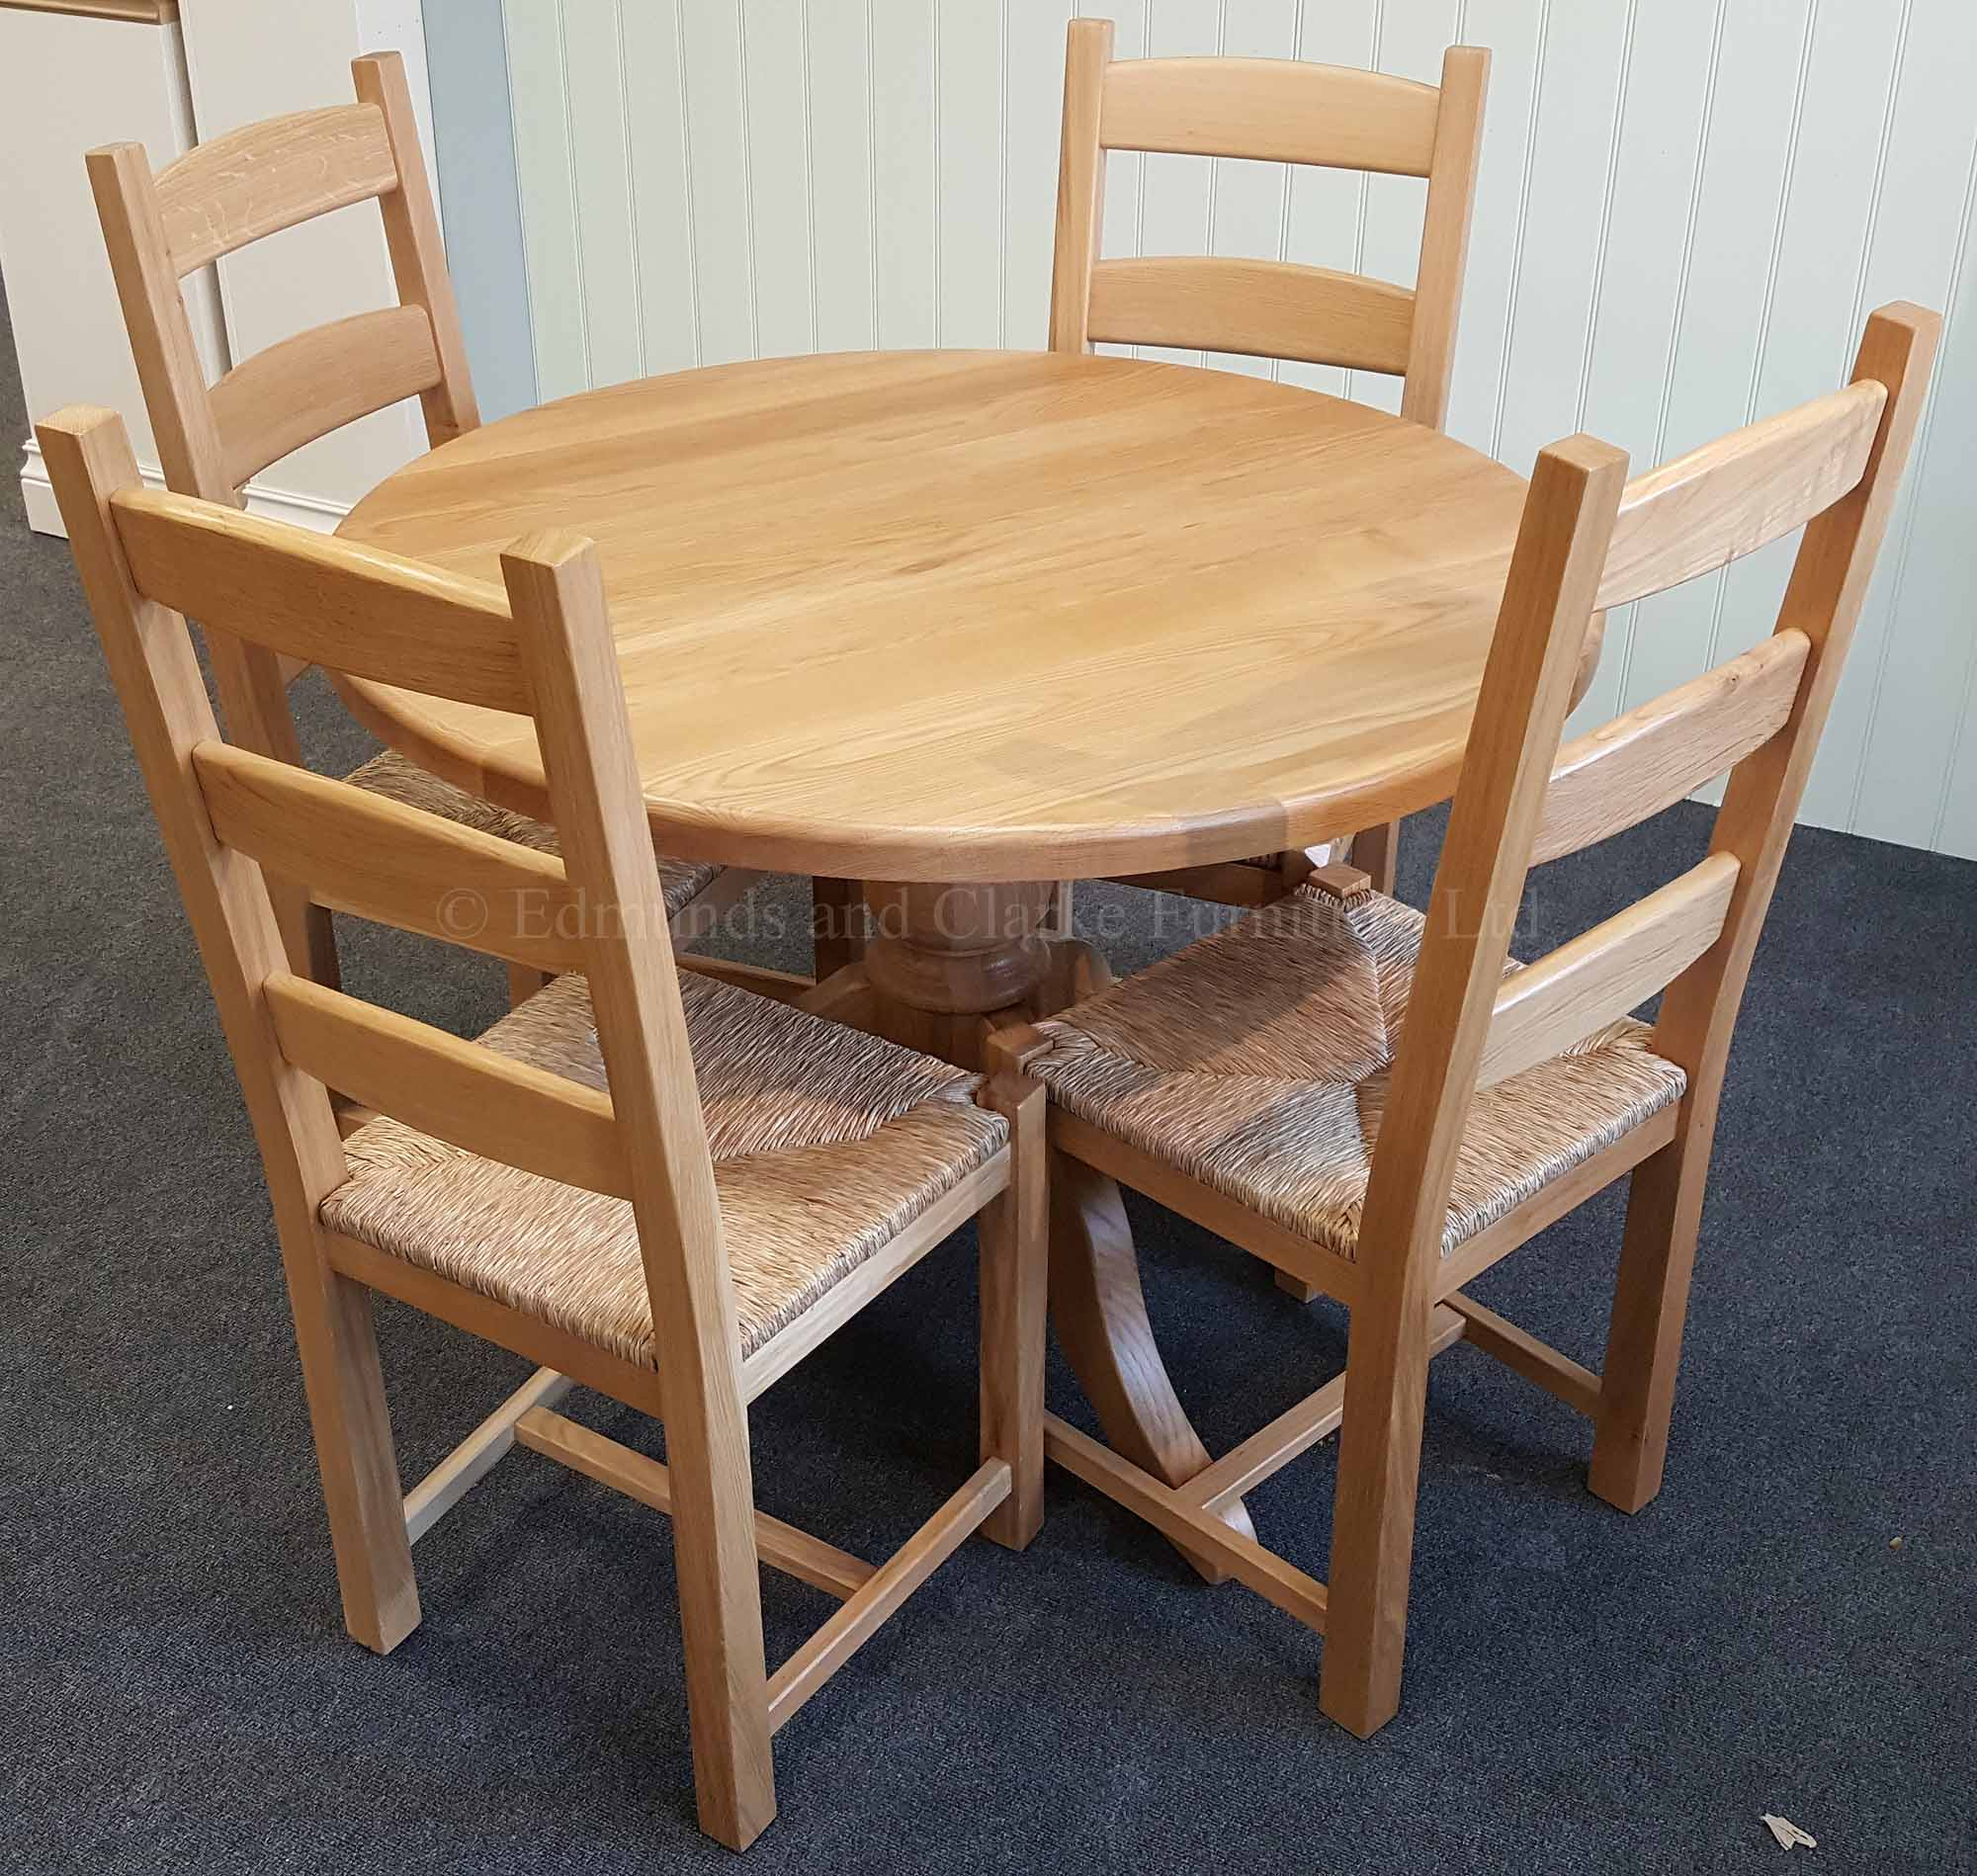 Round solid oak dining table with central pedestal